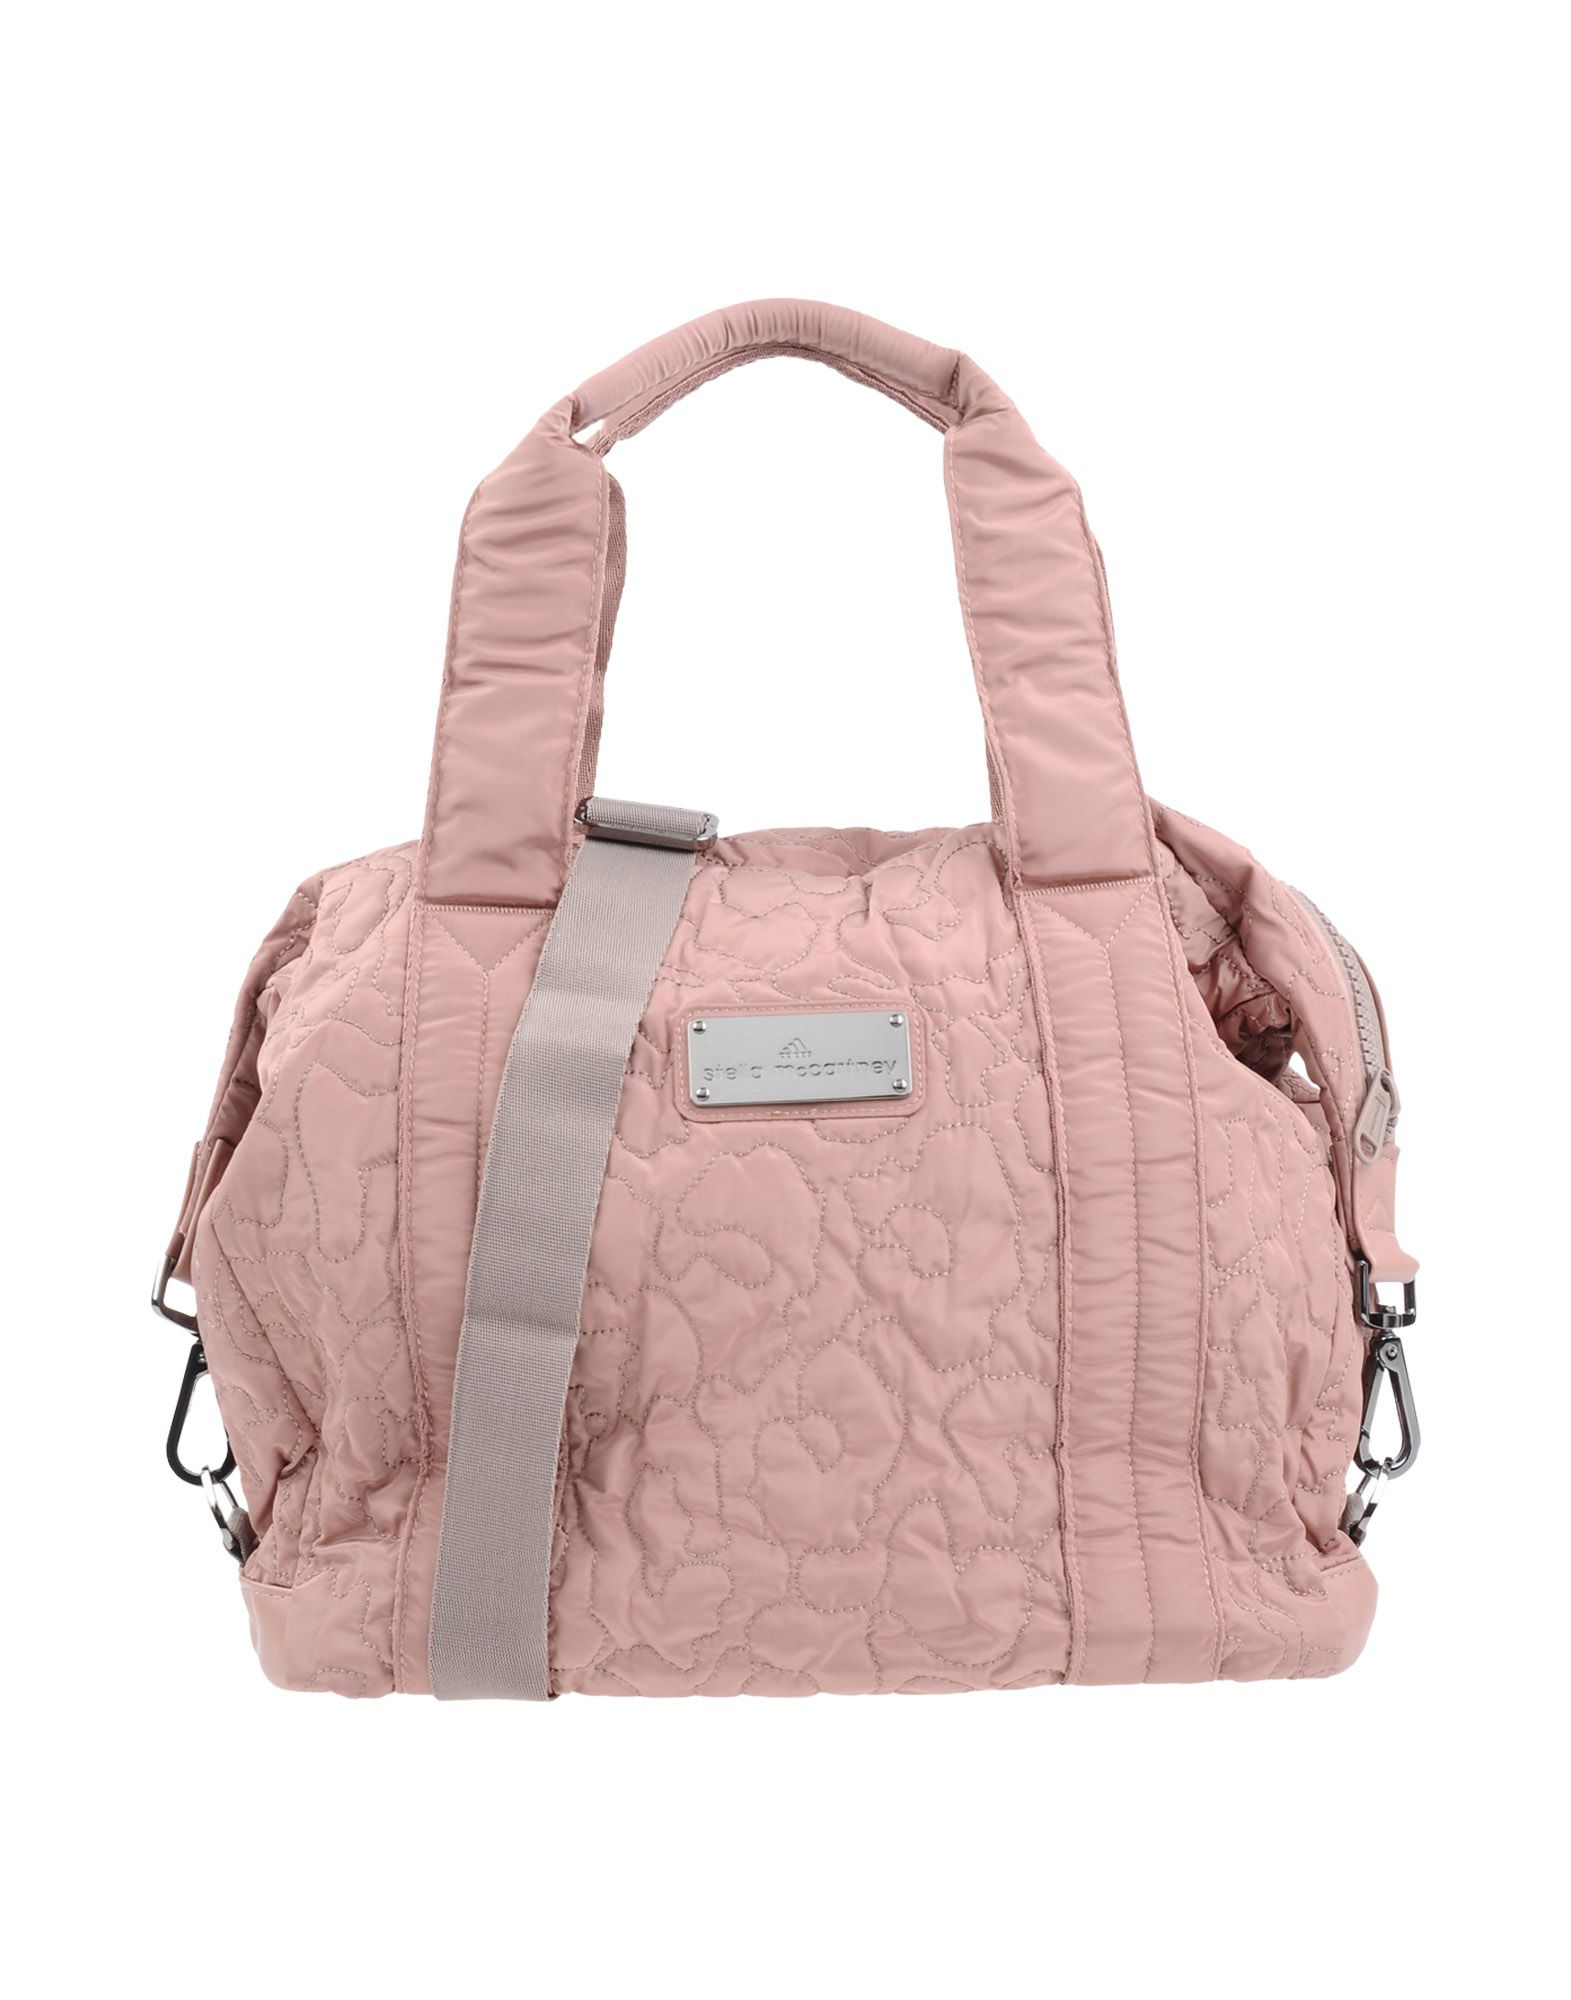 28cc1b35f728 Lyst - adidas By Stella McCartney Medium Quilted Gym Bag in Pink